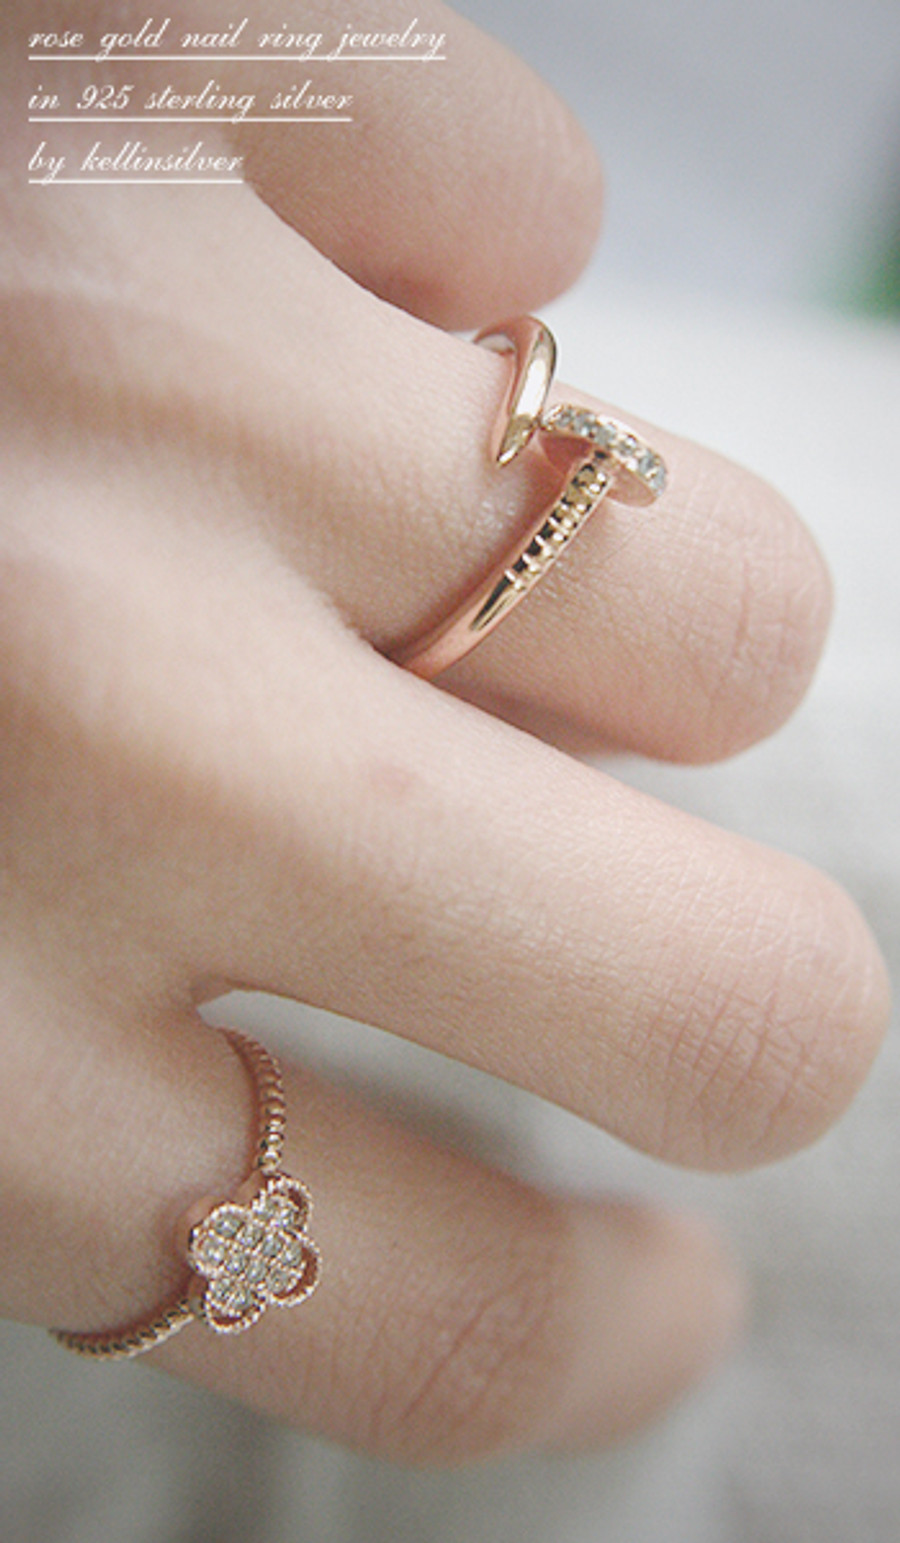 CZ Rose Gold Nail Ring Sterling Silver FROM KELLINSILVER.COM